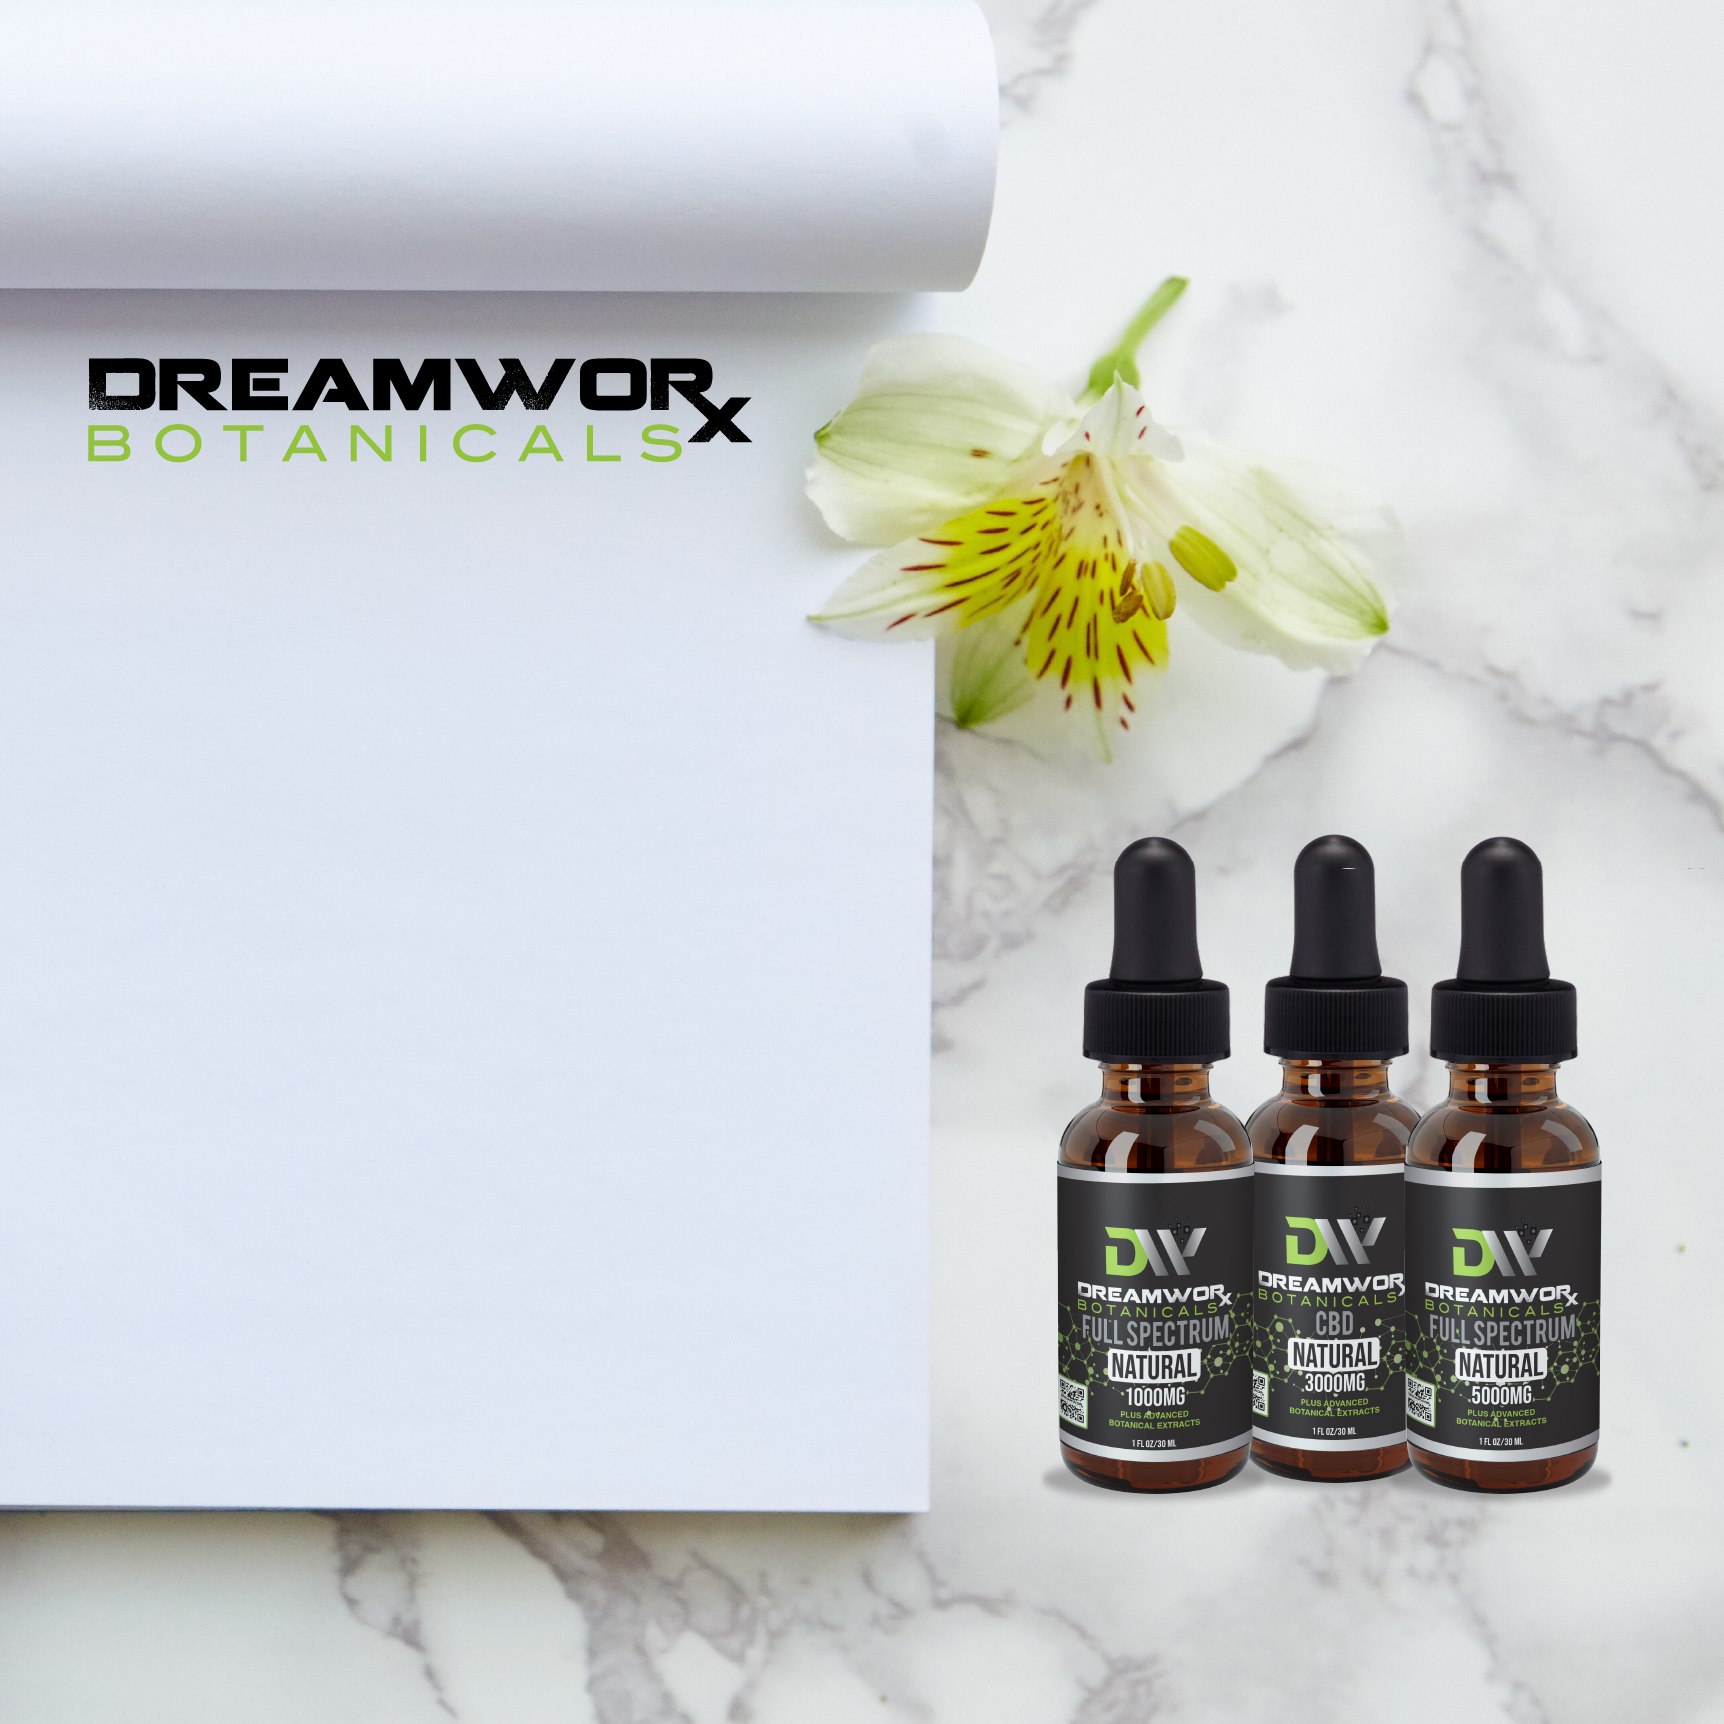 CBD For Focus Fort Worth - How Did Hemp Become So Popular - DreamWoRx CBD For Focus Fort Worth - DreamWoRx Hemp For Focus Fort Worth